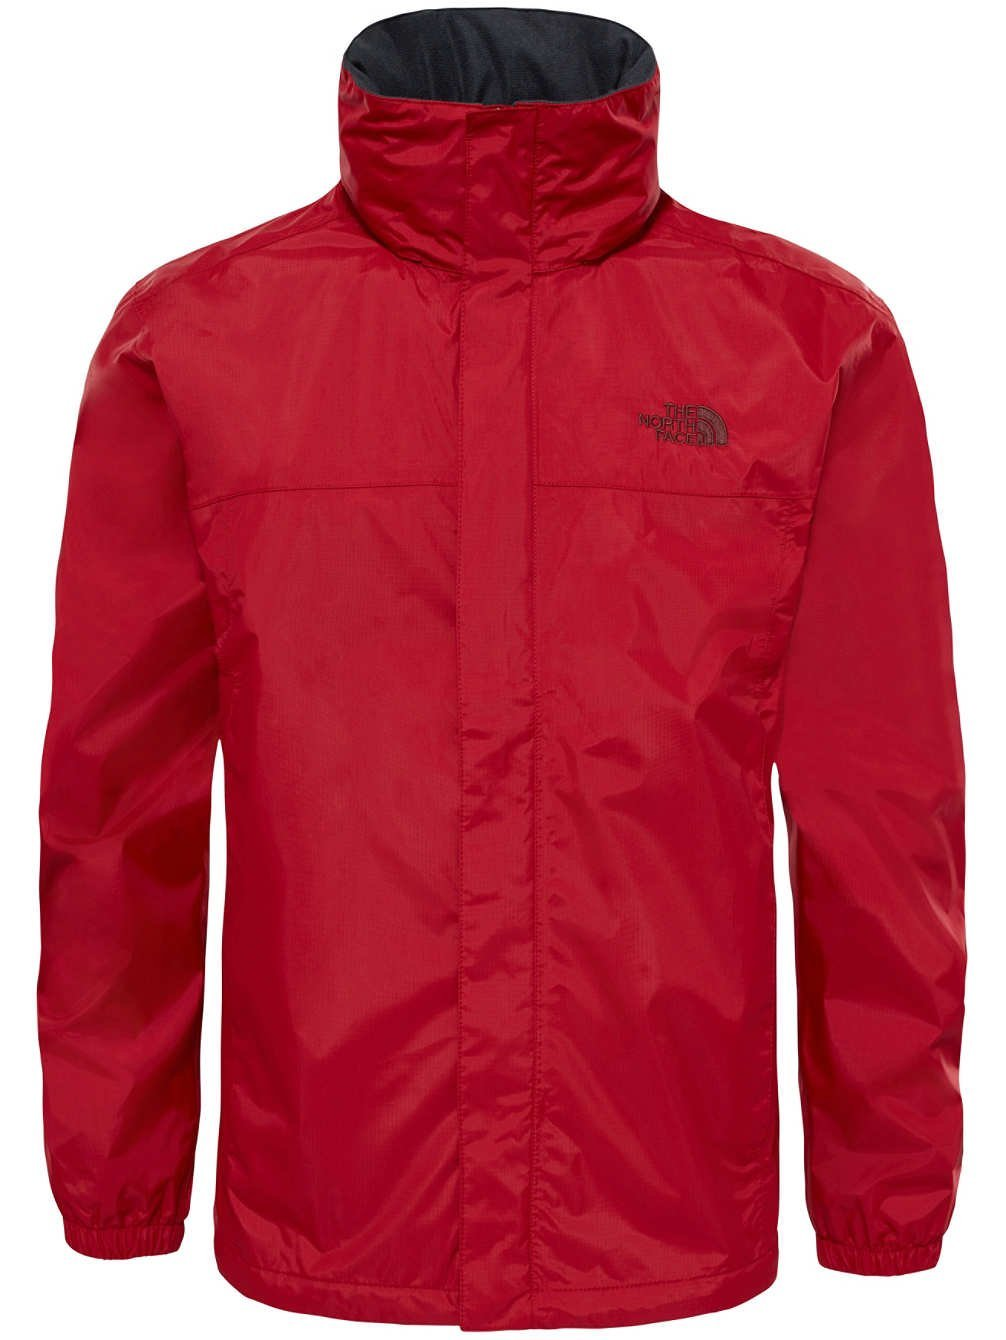 The North Face Resolve 2 メンズジャケット B01HQSY9XW Lサイズ|Cardinal Red/Sequoia Red Cardinal Red/Sequoia Red Lサイズ